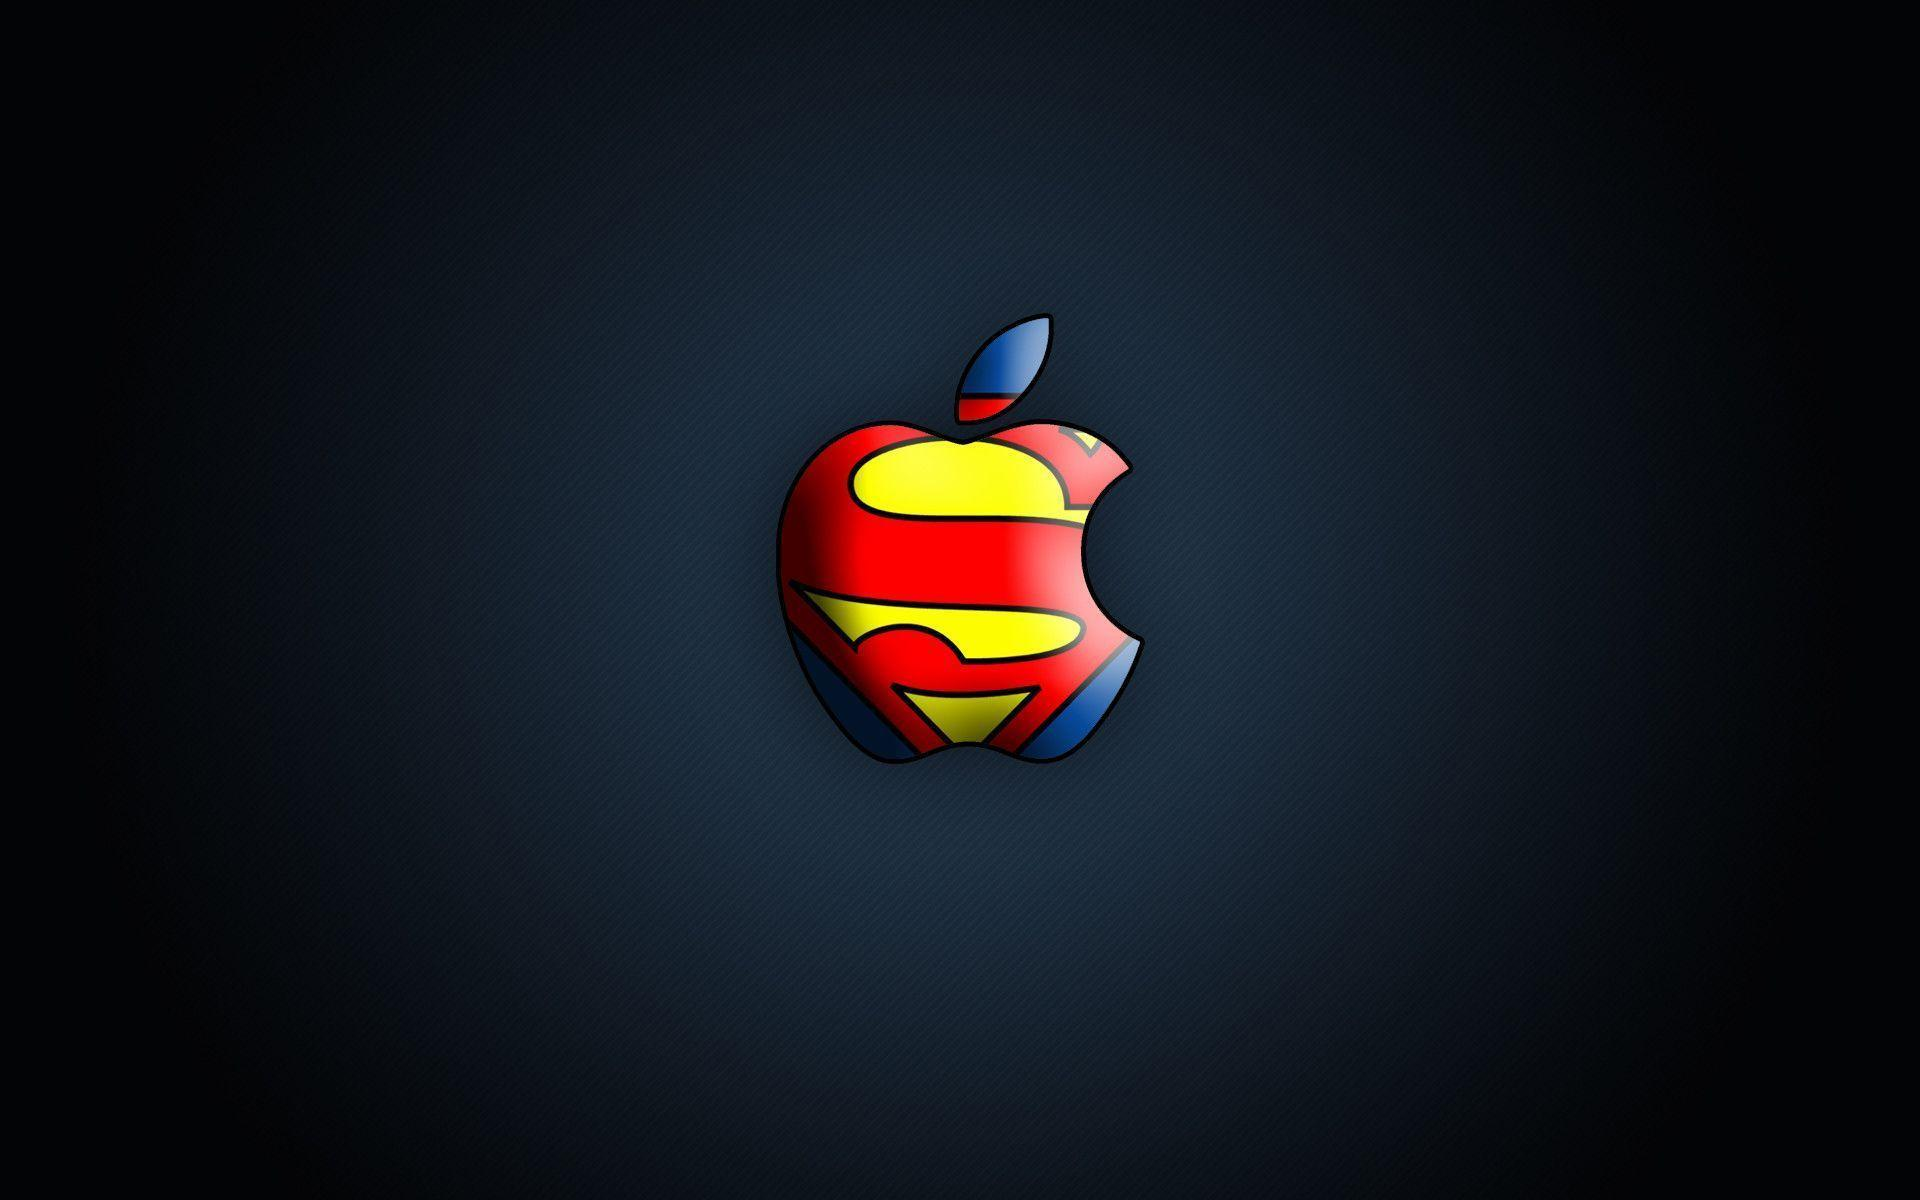 Cool logo backgrounds wallpaper cave - Cool logo wallpapers ...